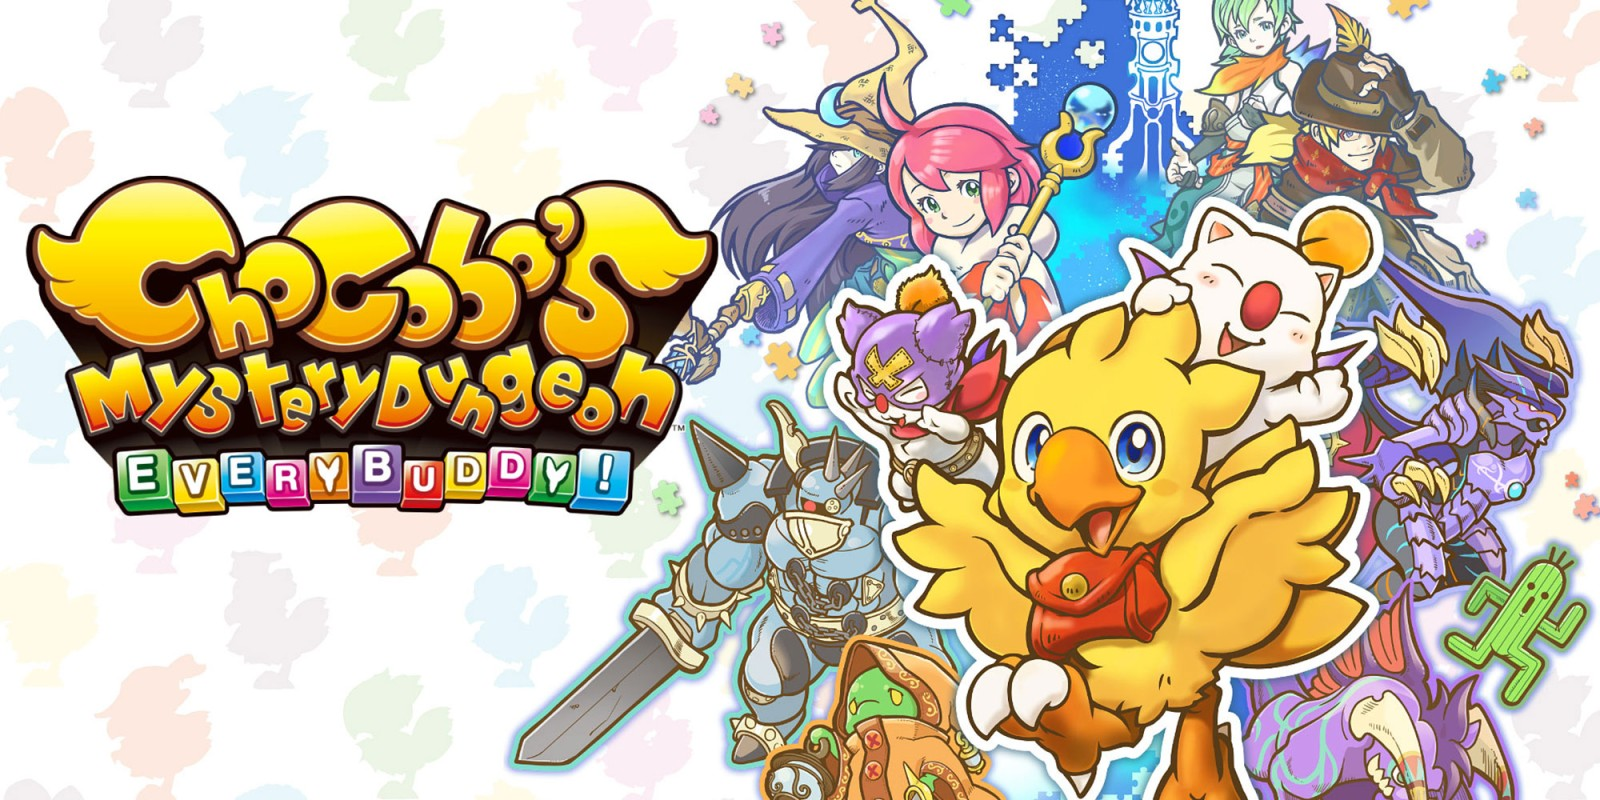 Chocobos Mystery Dungeon Every Buddy 1688664 Hd